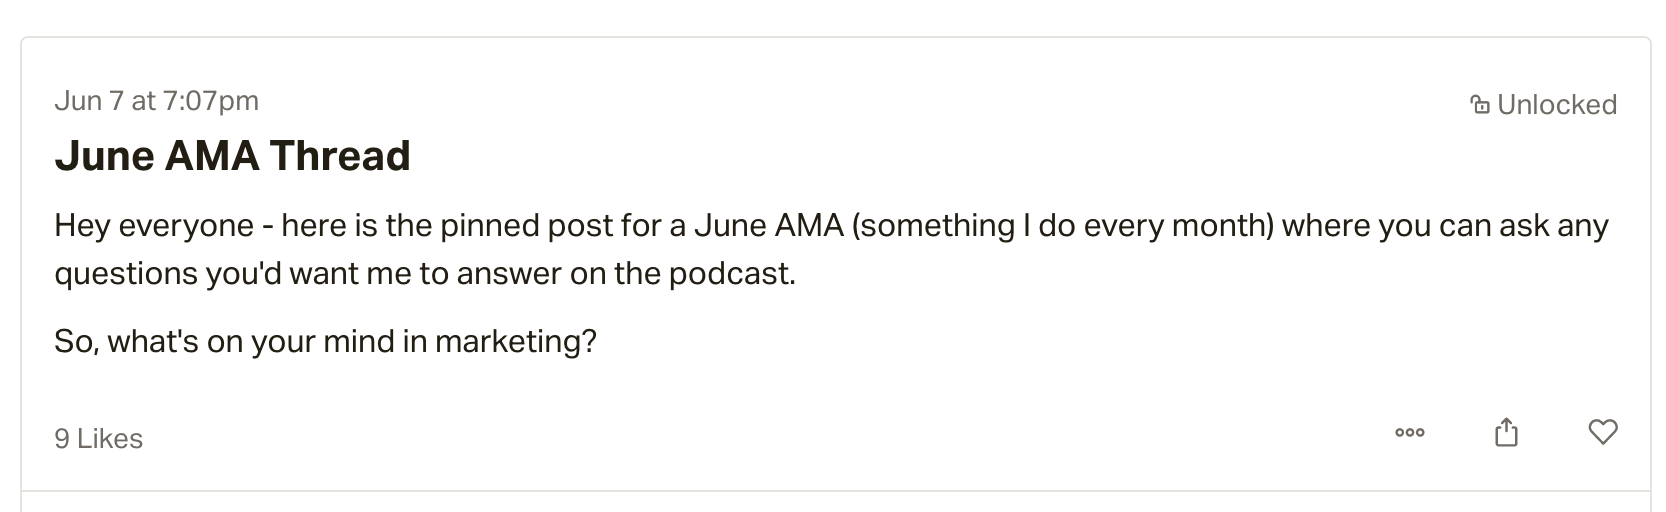 Image of Dave G's June AMA on Patreon.